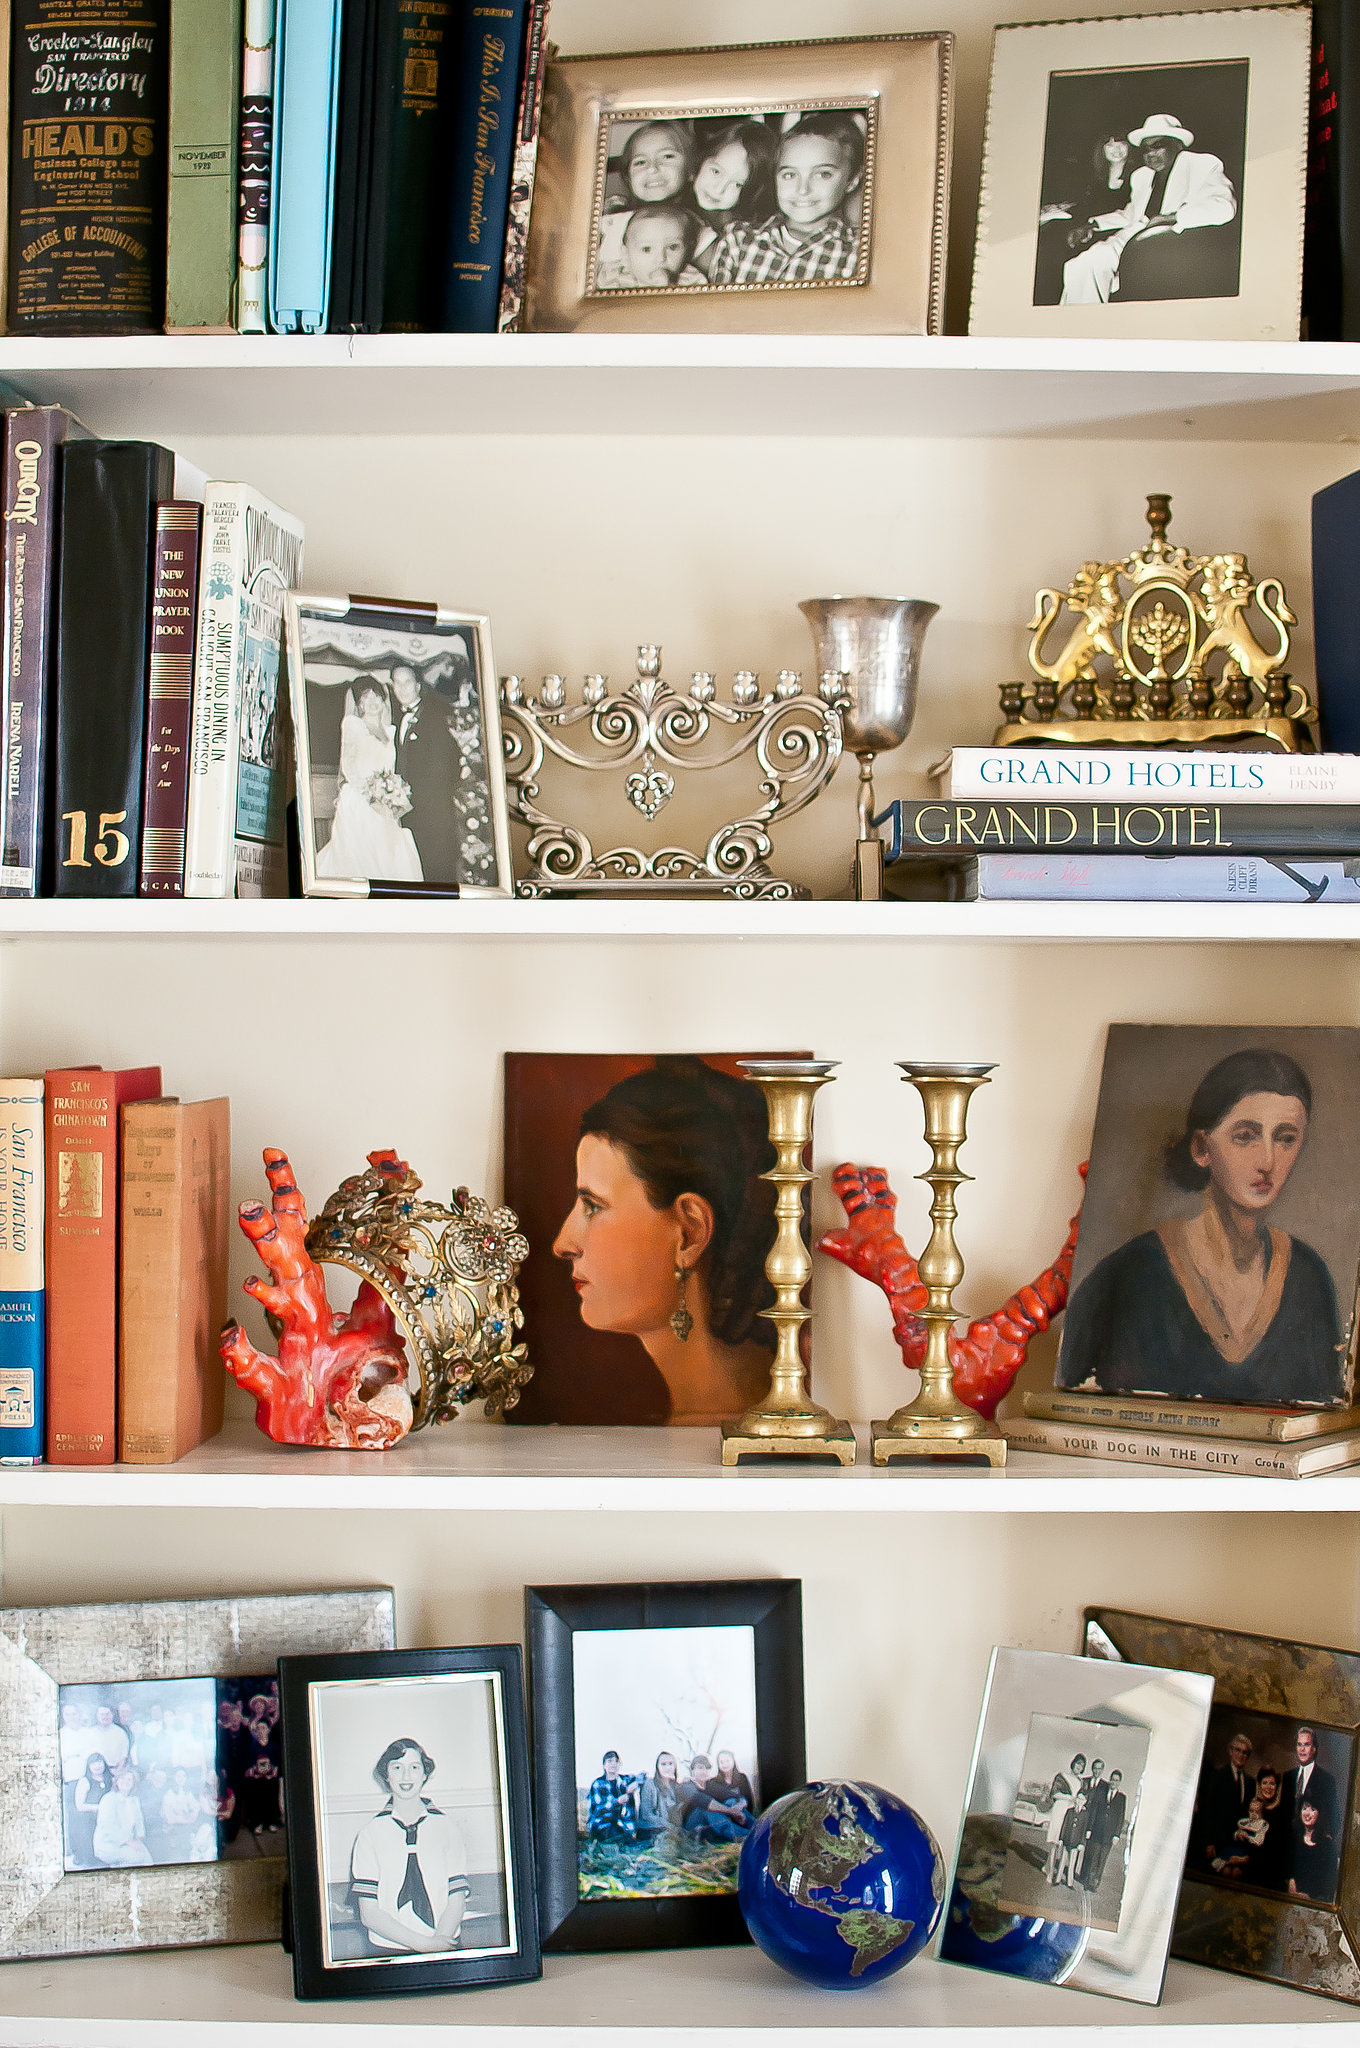 Lynn's shelves are filled with a mix of pretty antique accessories, family photos, and books. Source: Kassie Borreson